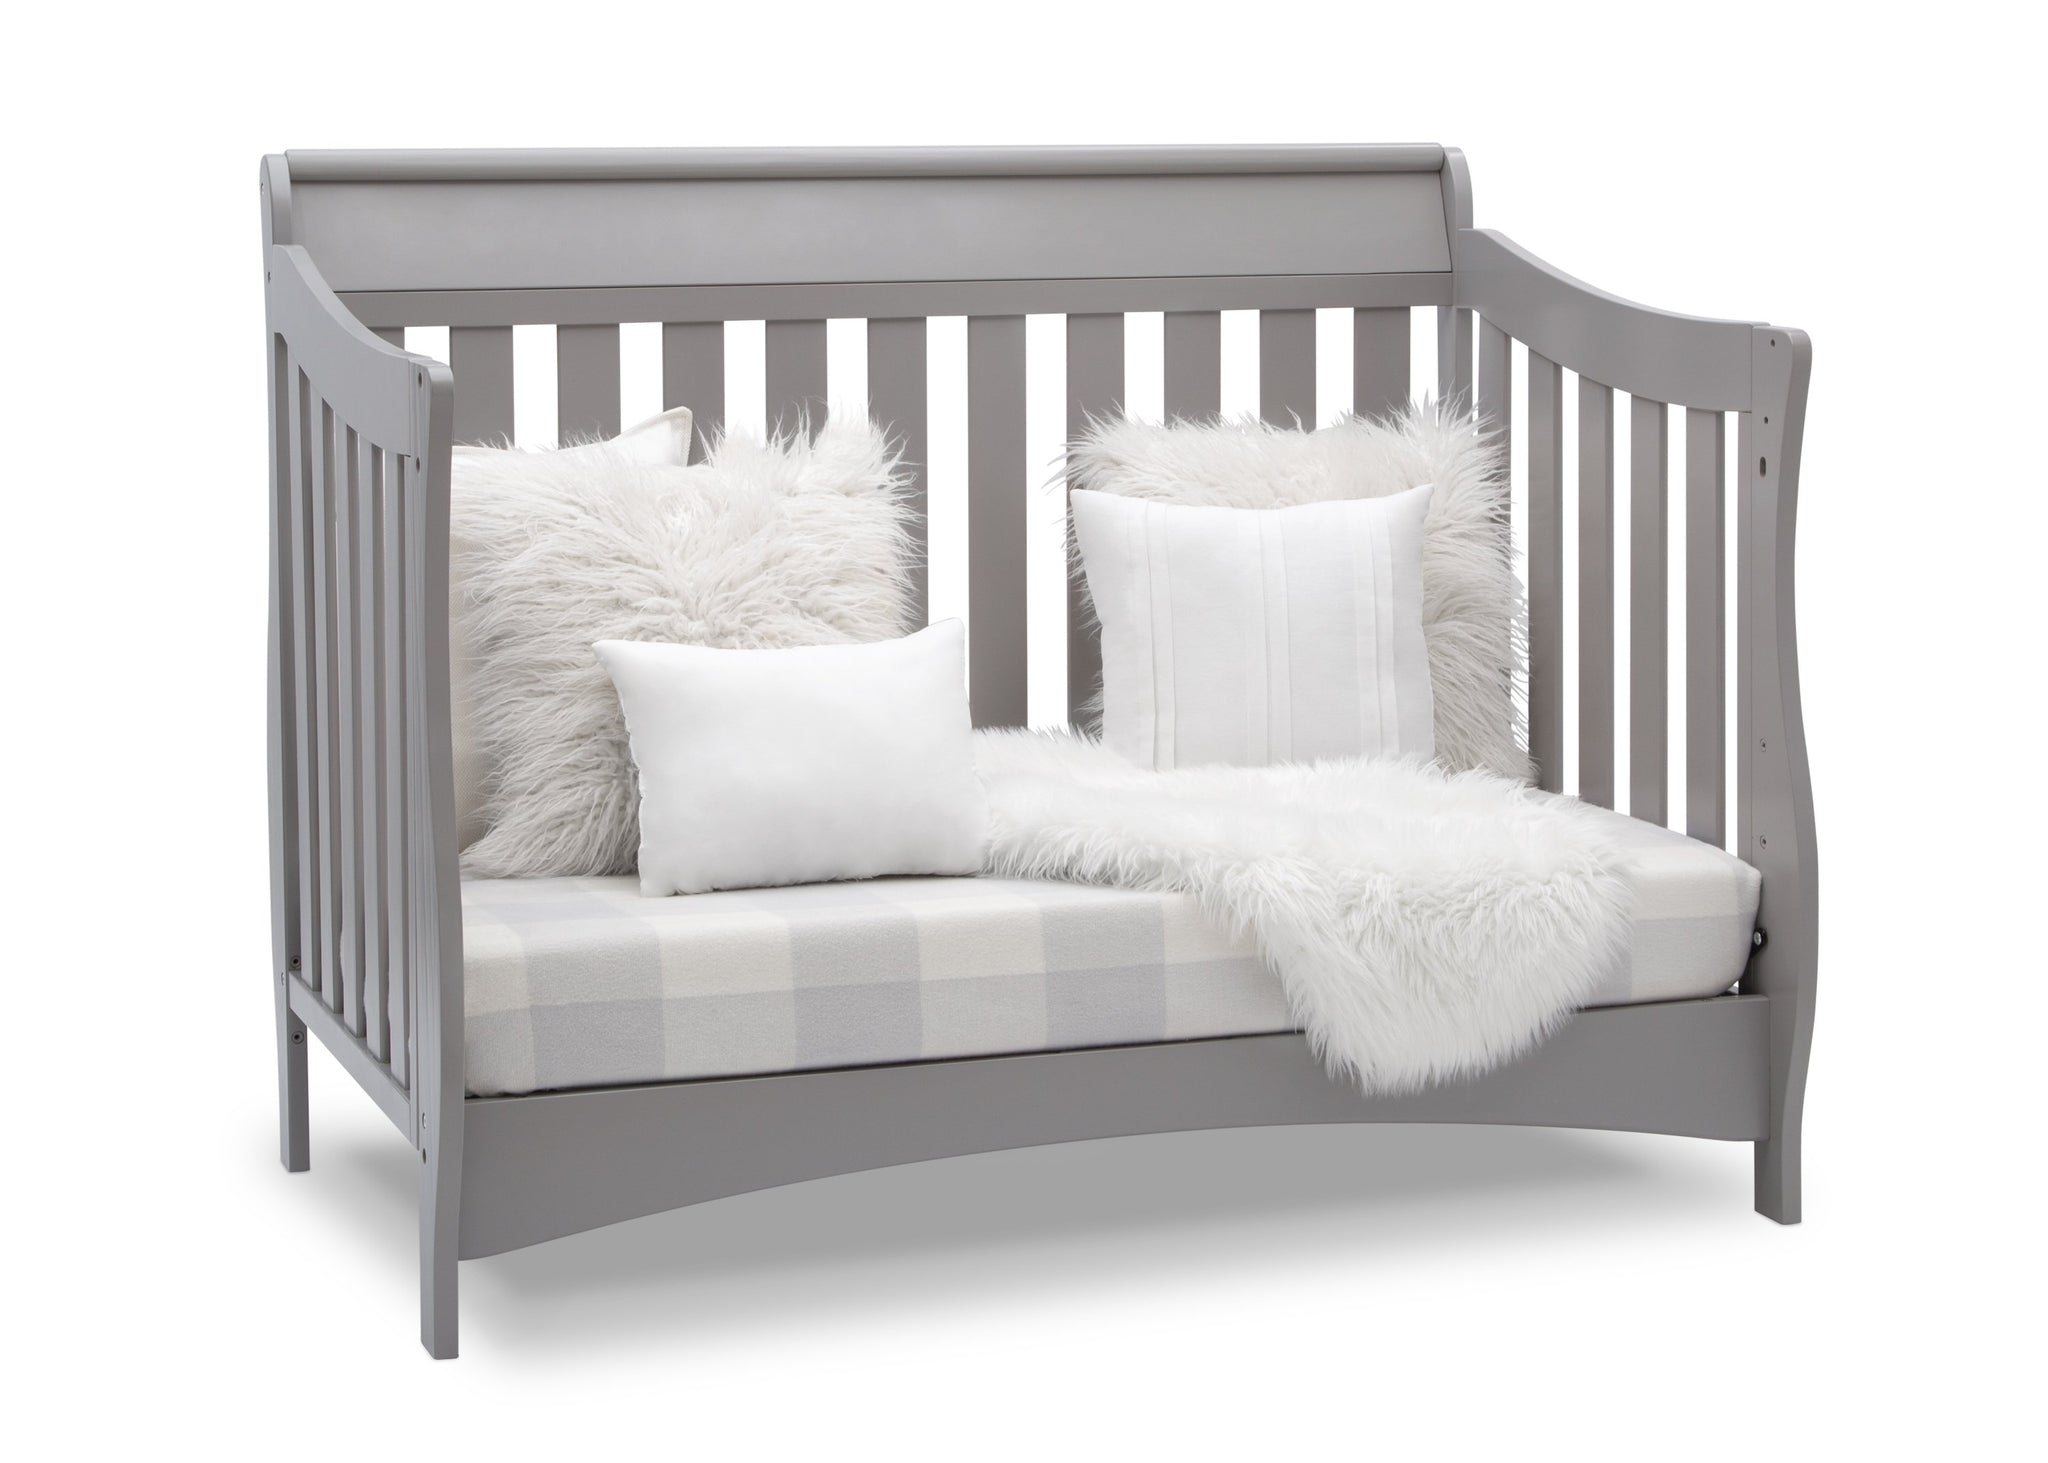 Delta Children Grey (026) Bentley S Series Deluxe 6-in-1 Convertible Crib, Right Sofa Bed Silo View